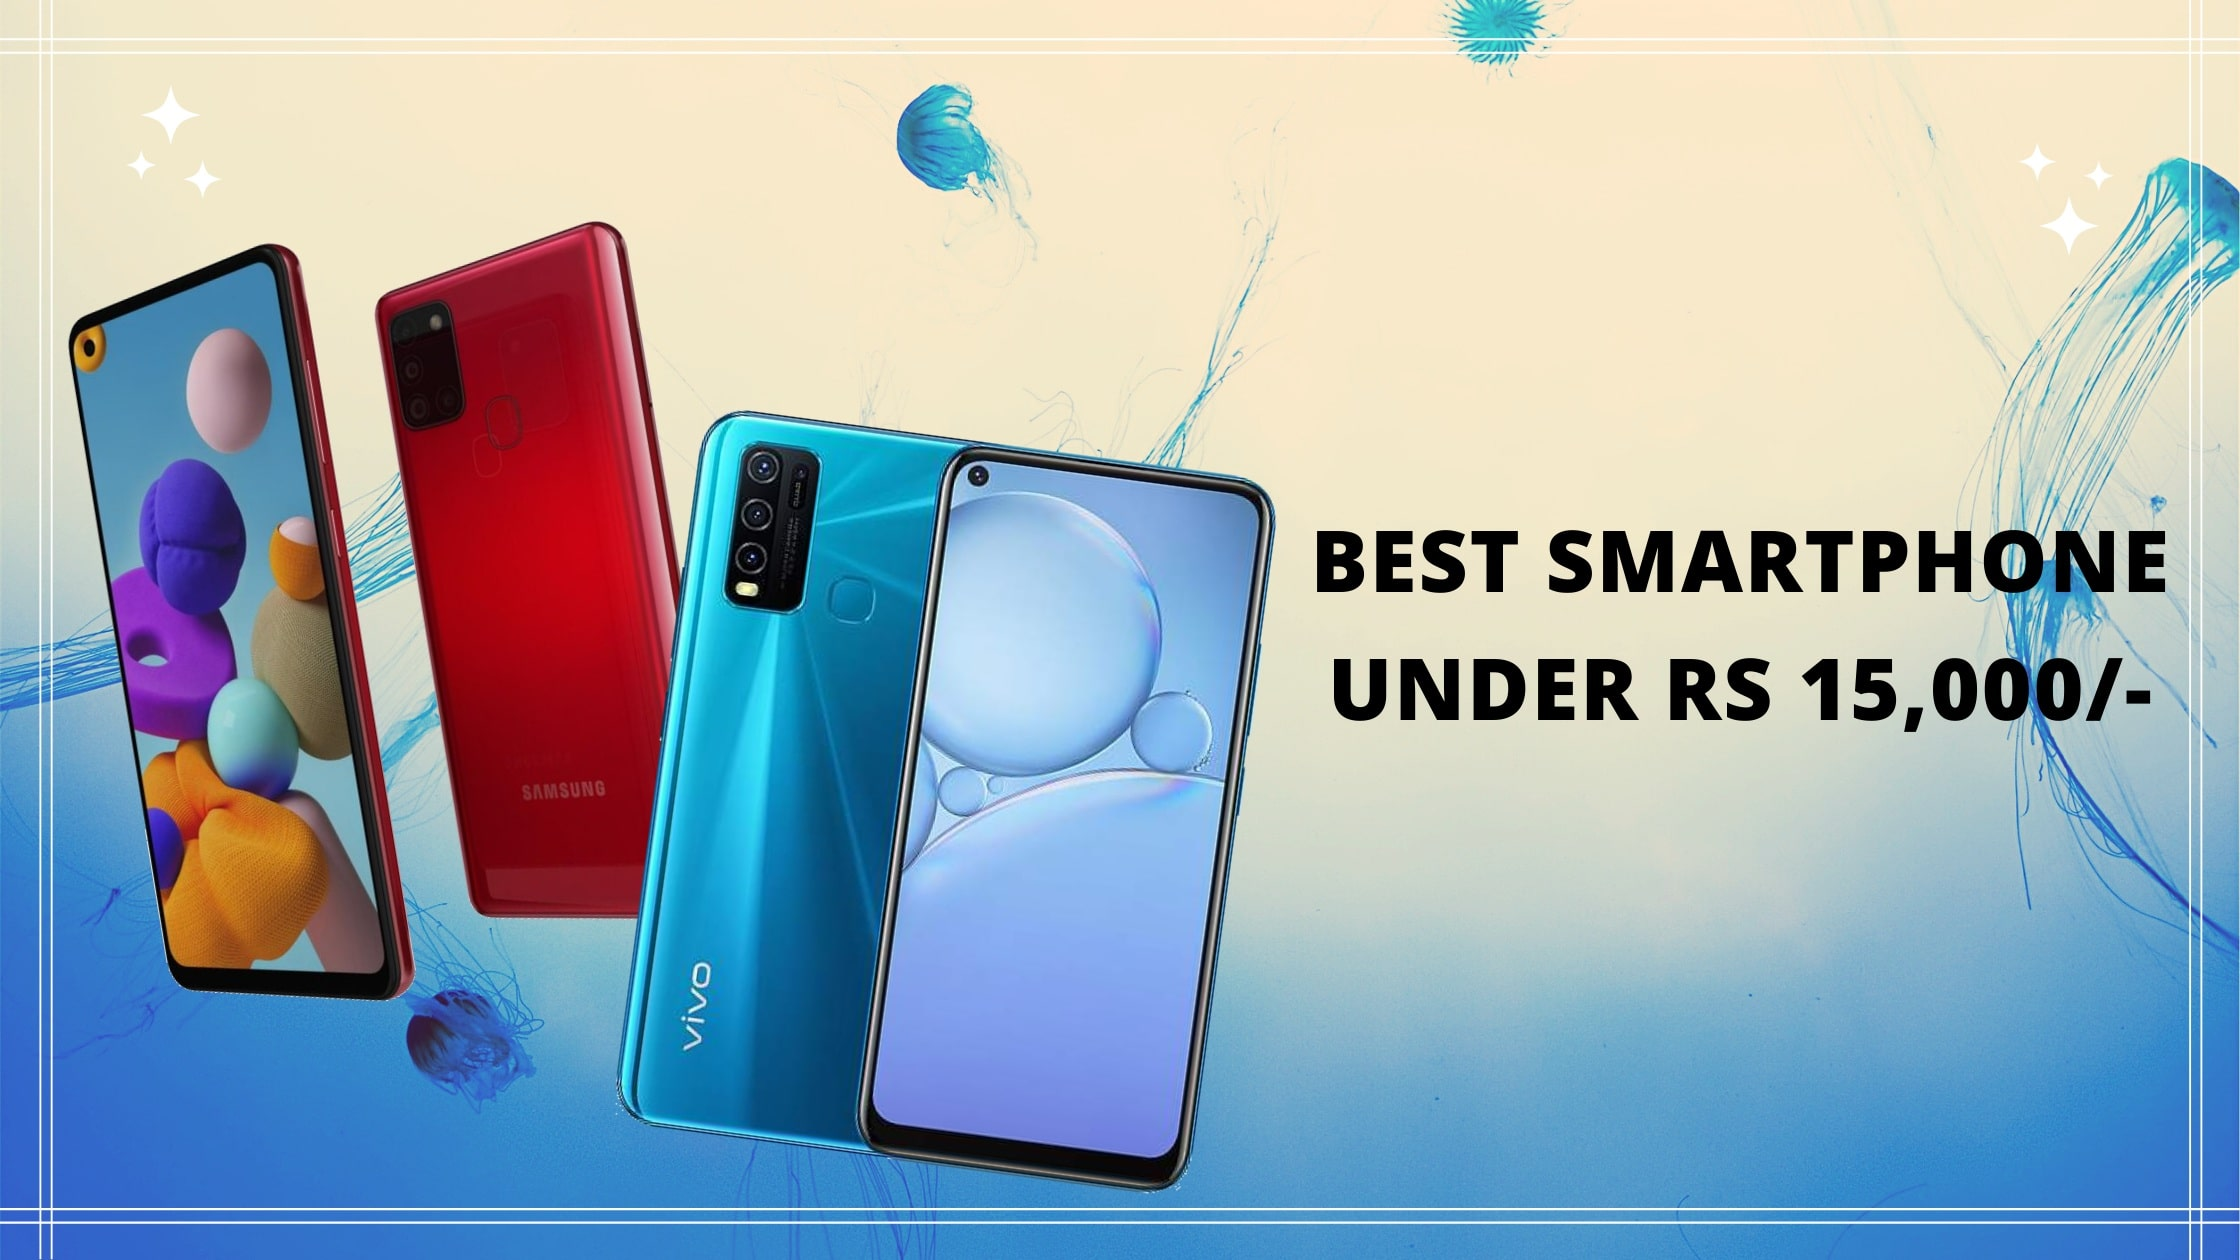 Best Smartphone Under 15000: Samsung & Vivo Android phone in India